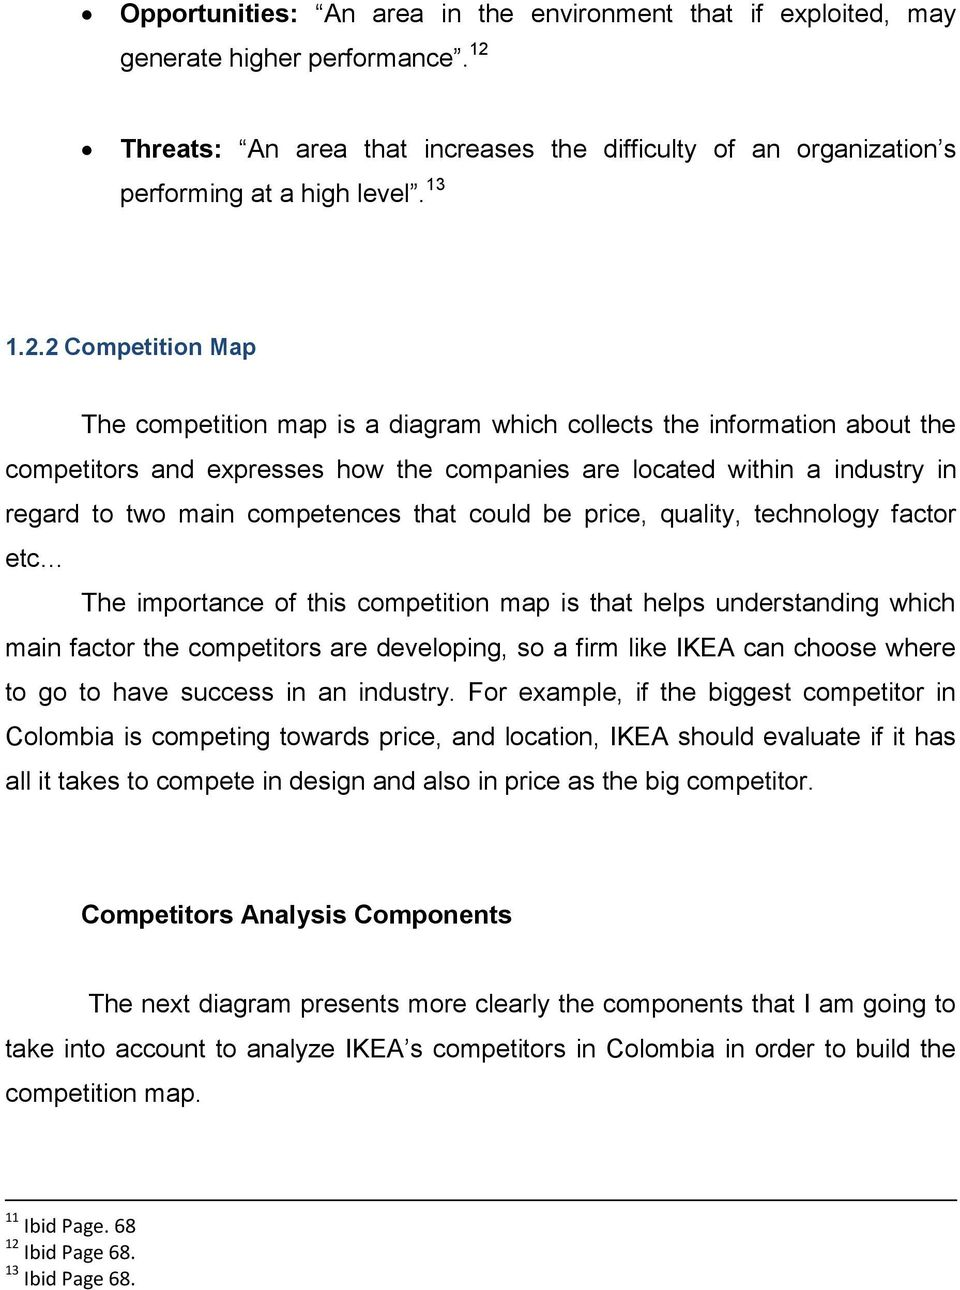 2 Competition Map The competition map is a diagram which collects the information about the competitors and expresses how the companies are located within a industry in regard to two main competences